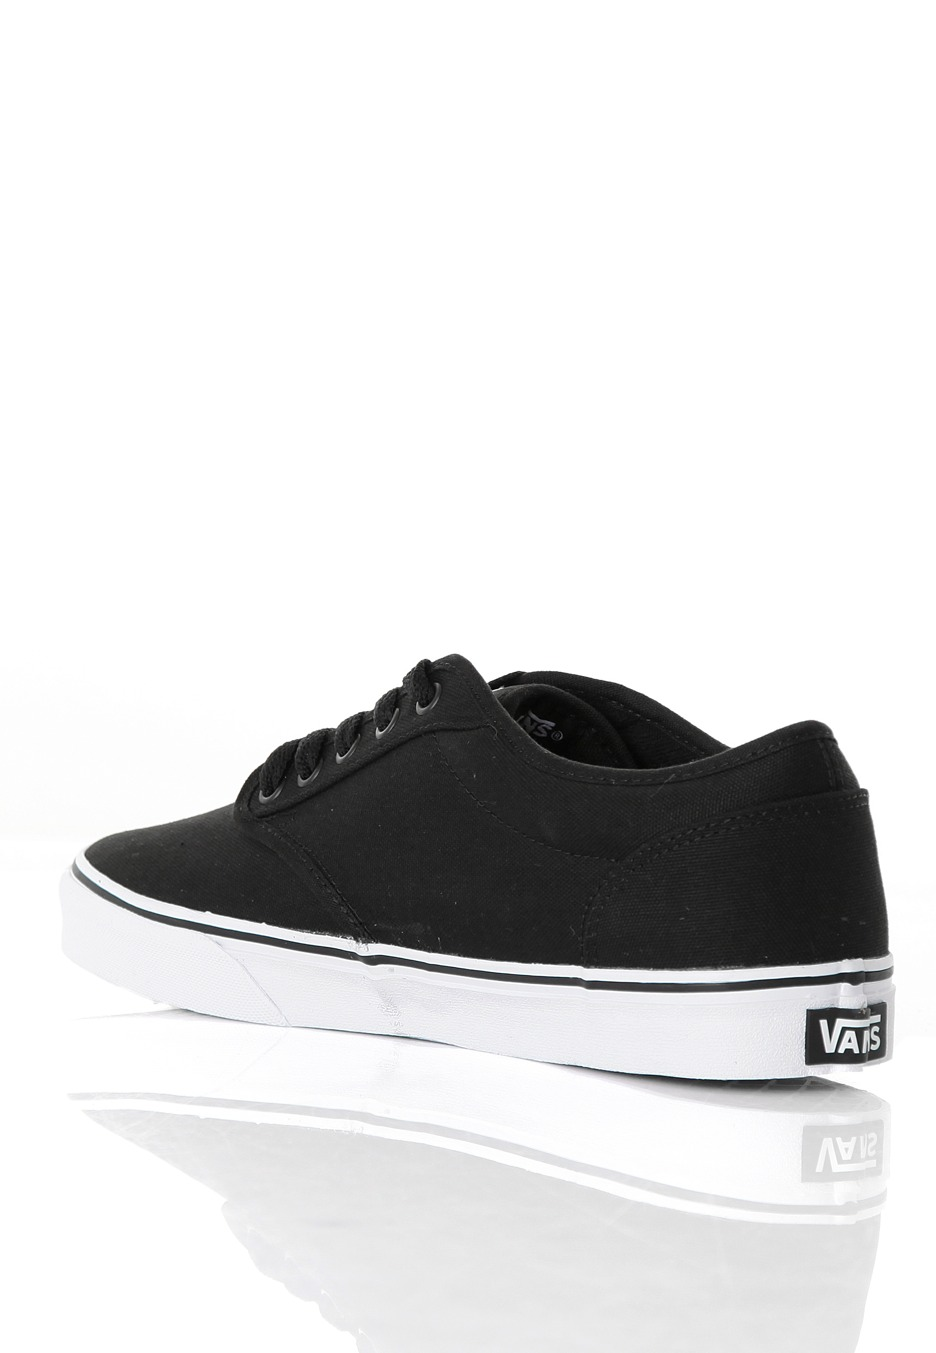 45722e2eaed4 vans era vs atwood Vans - Atwood Canvas Black White ...